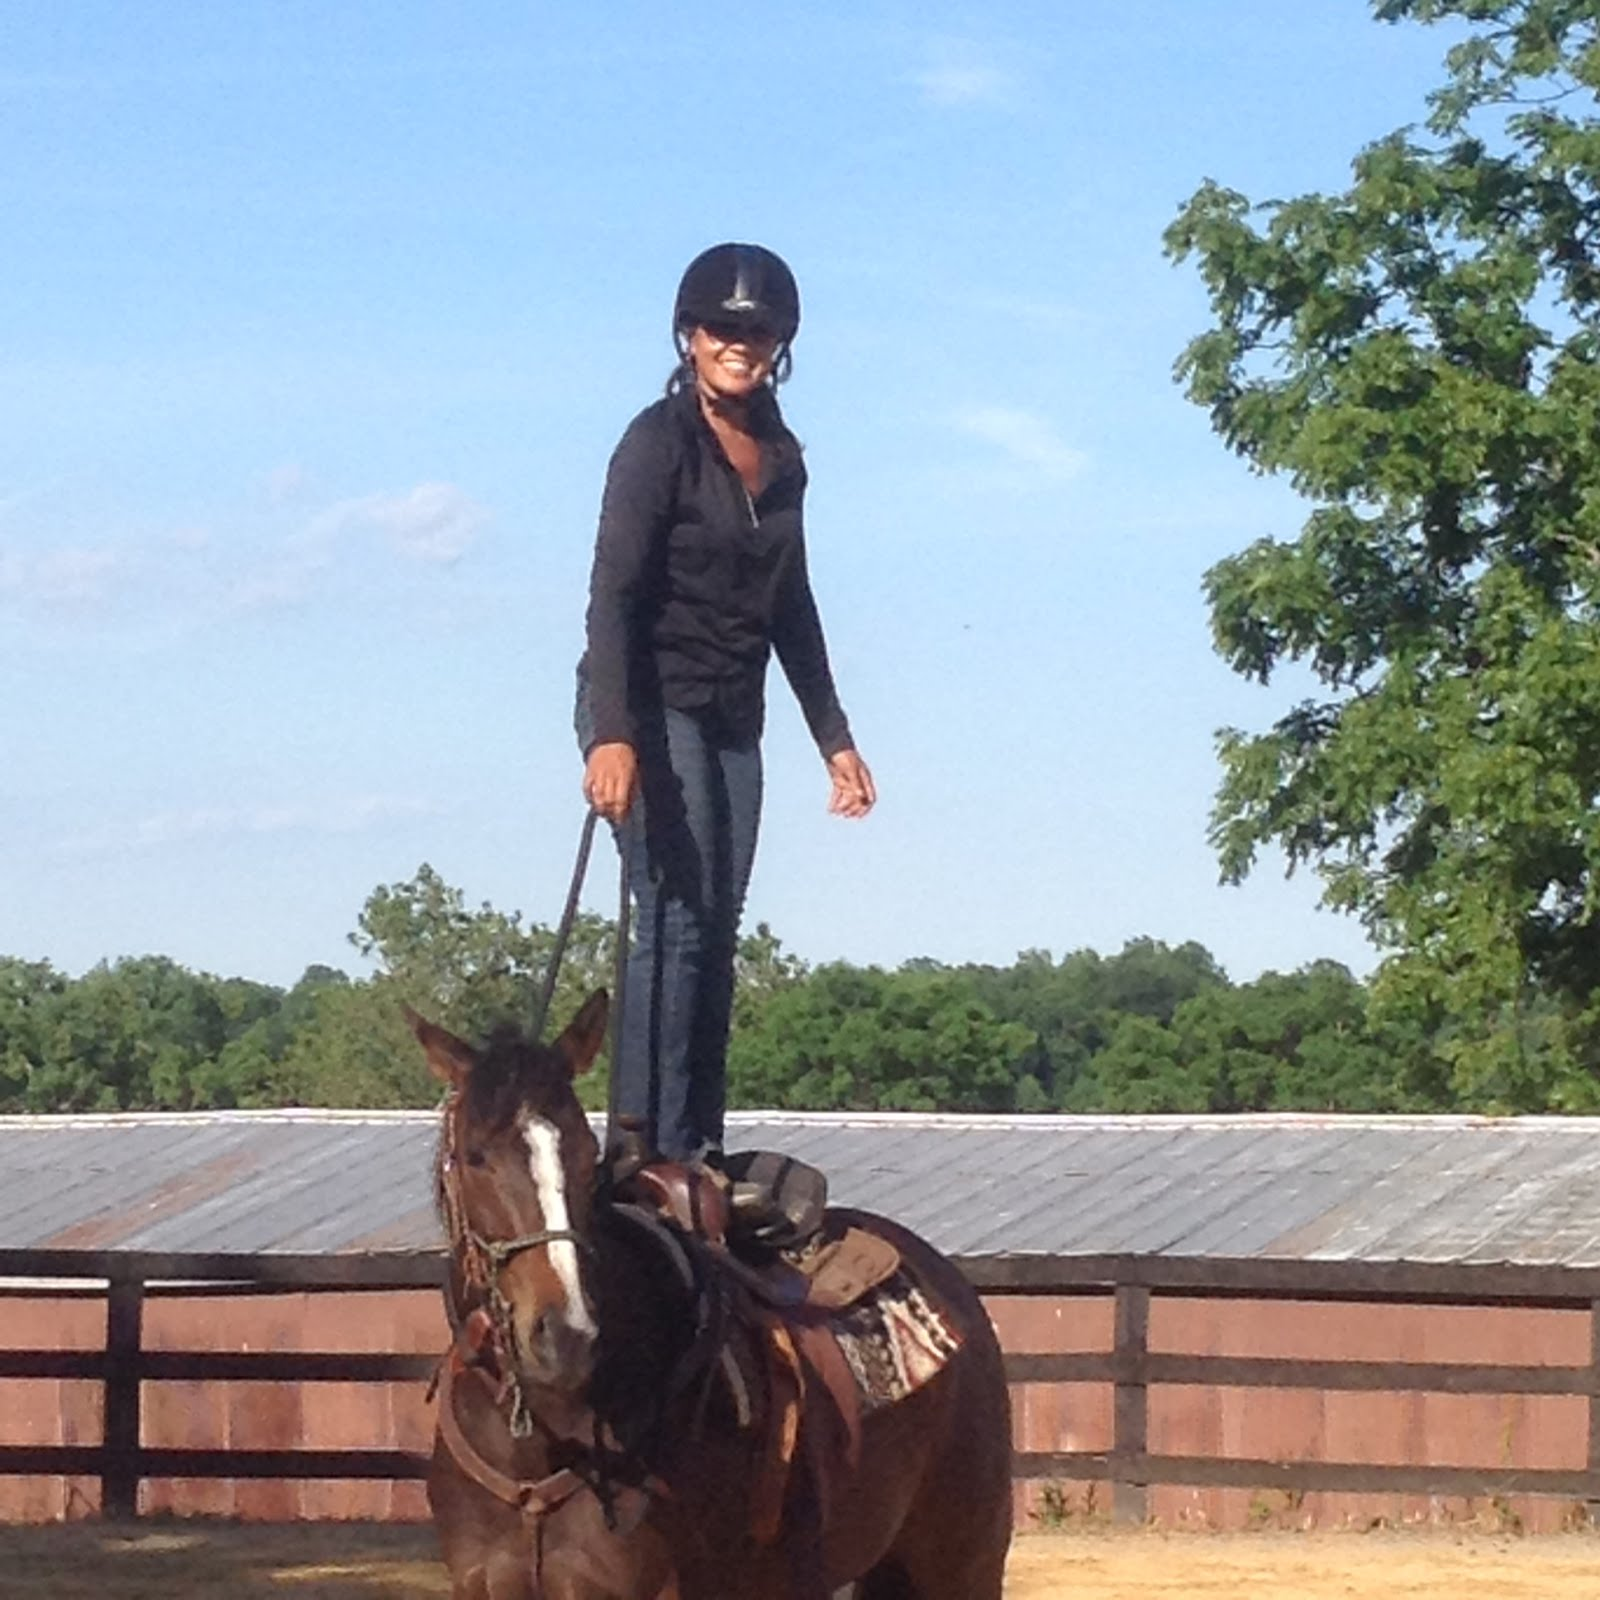 Ms. Jean and her 4 yr old filly, Anna, will be performing at the Thoroughbred Challenge in Kentucky